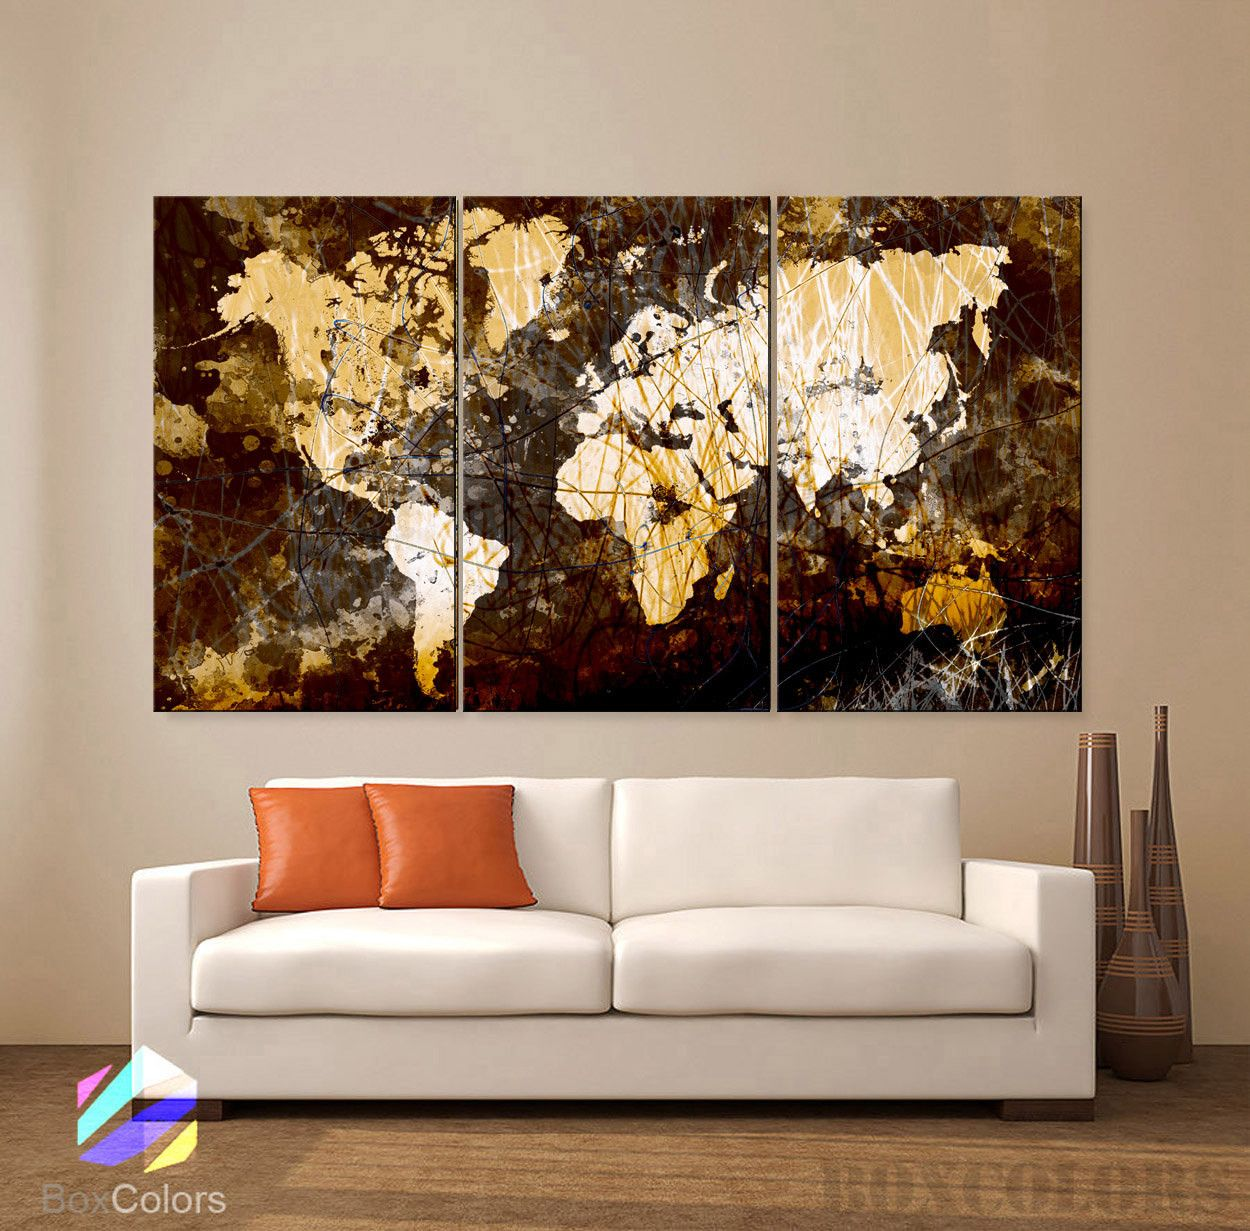 Large 30 X 60 3 Panels Original Art Canvas Print World Map Texture Abstract Wall Decor Office Interior Home Included Framed 1 5 Depth Abstract Wall Decor Office Wall Decor Canvas Art Prints